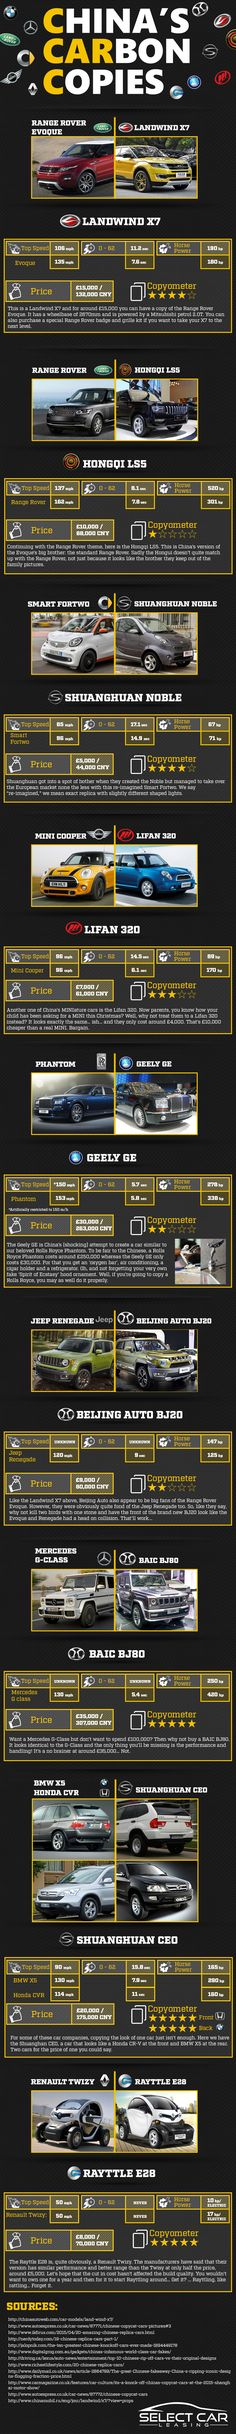 China's Carbon Copies #Infographic #Cars #Transportation